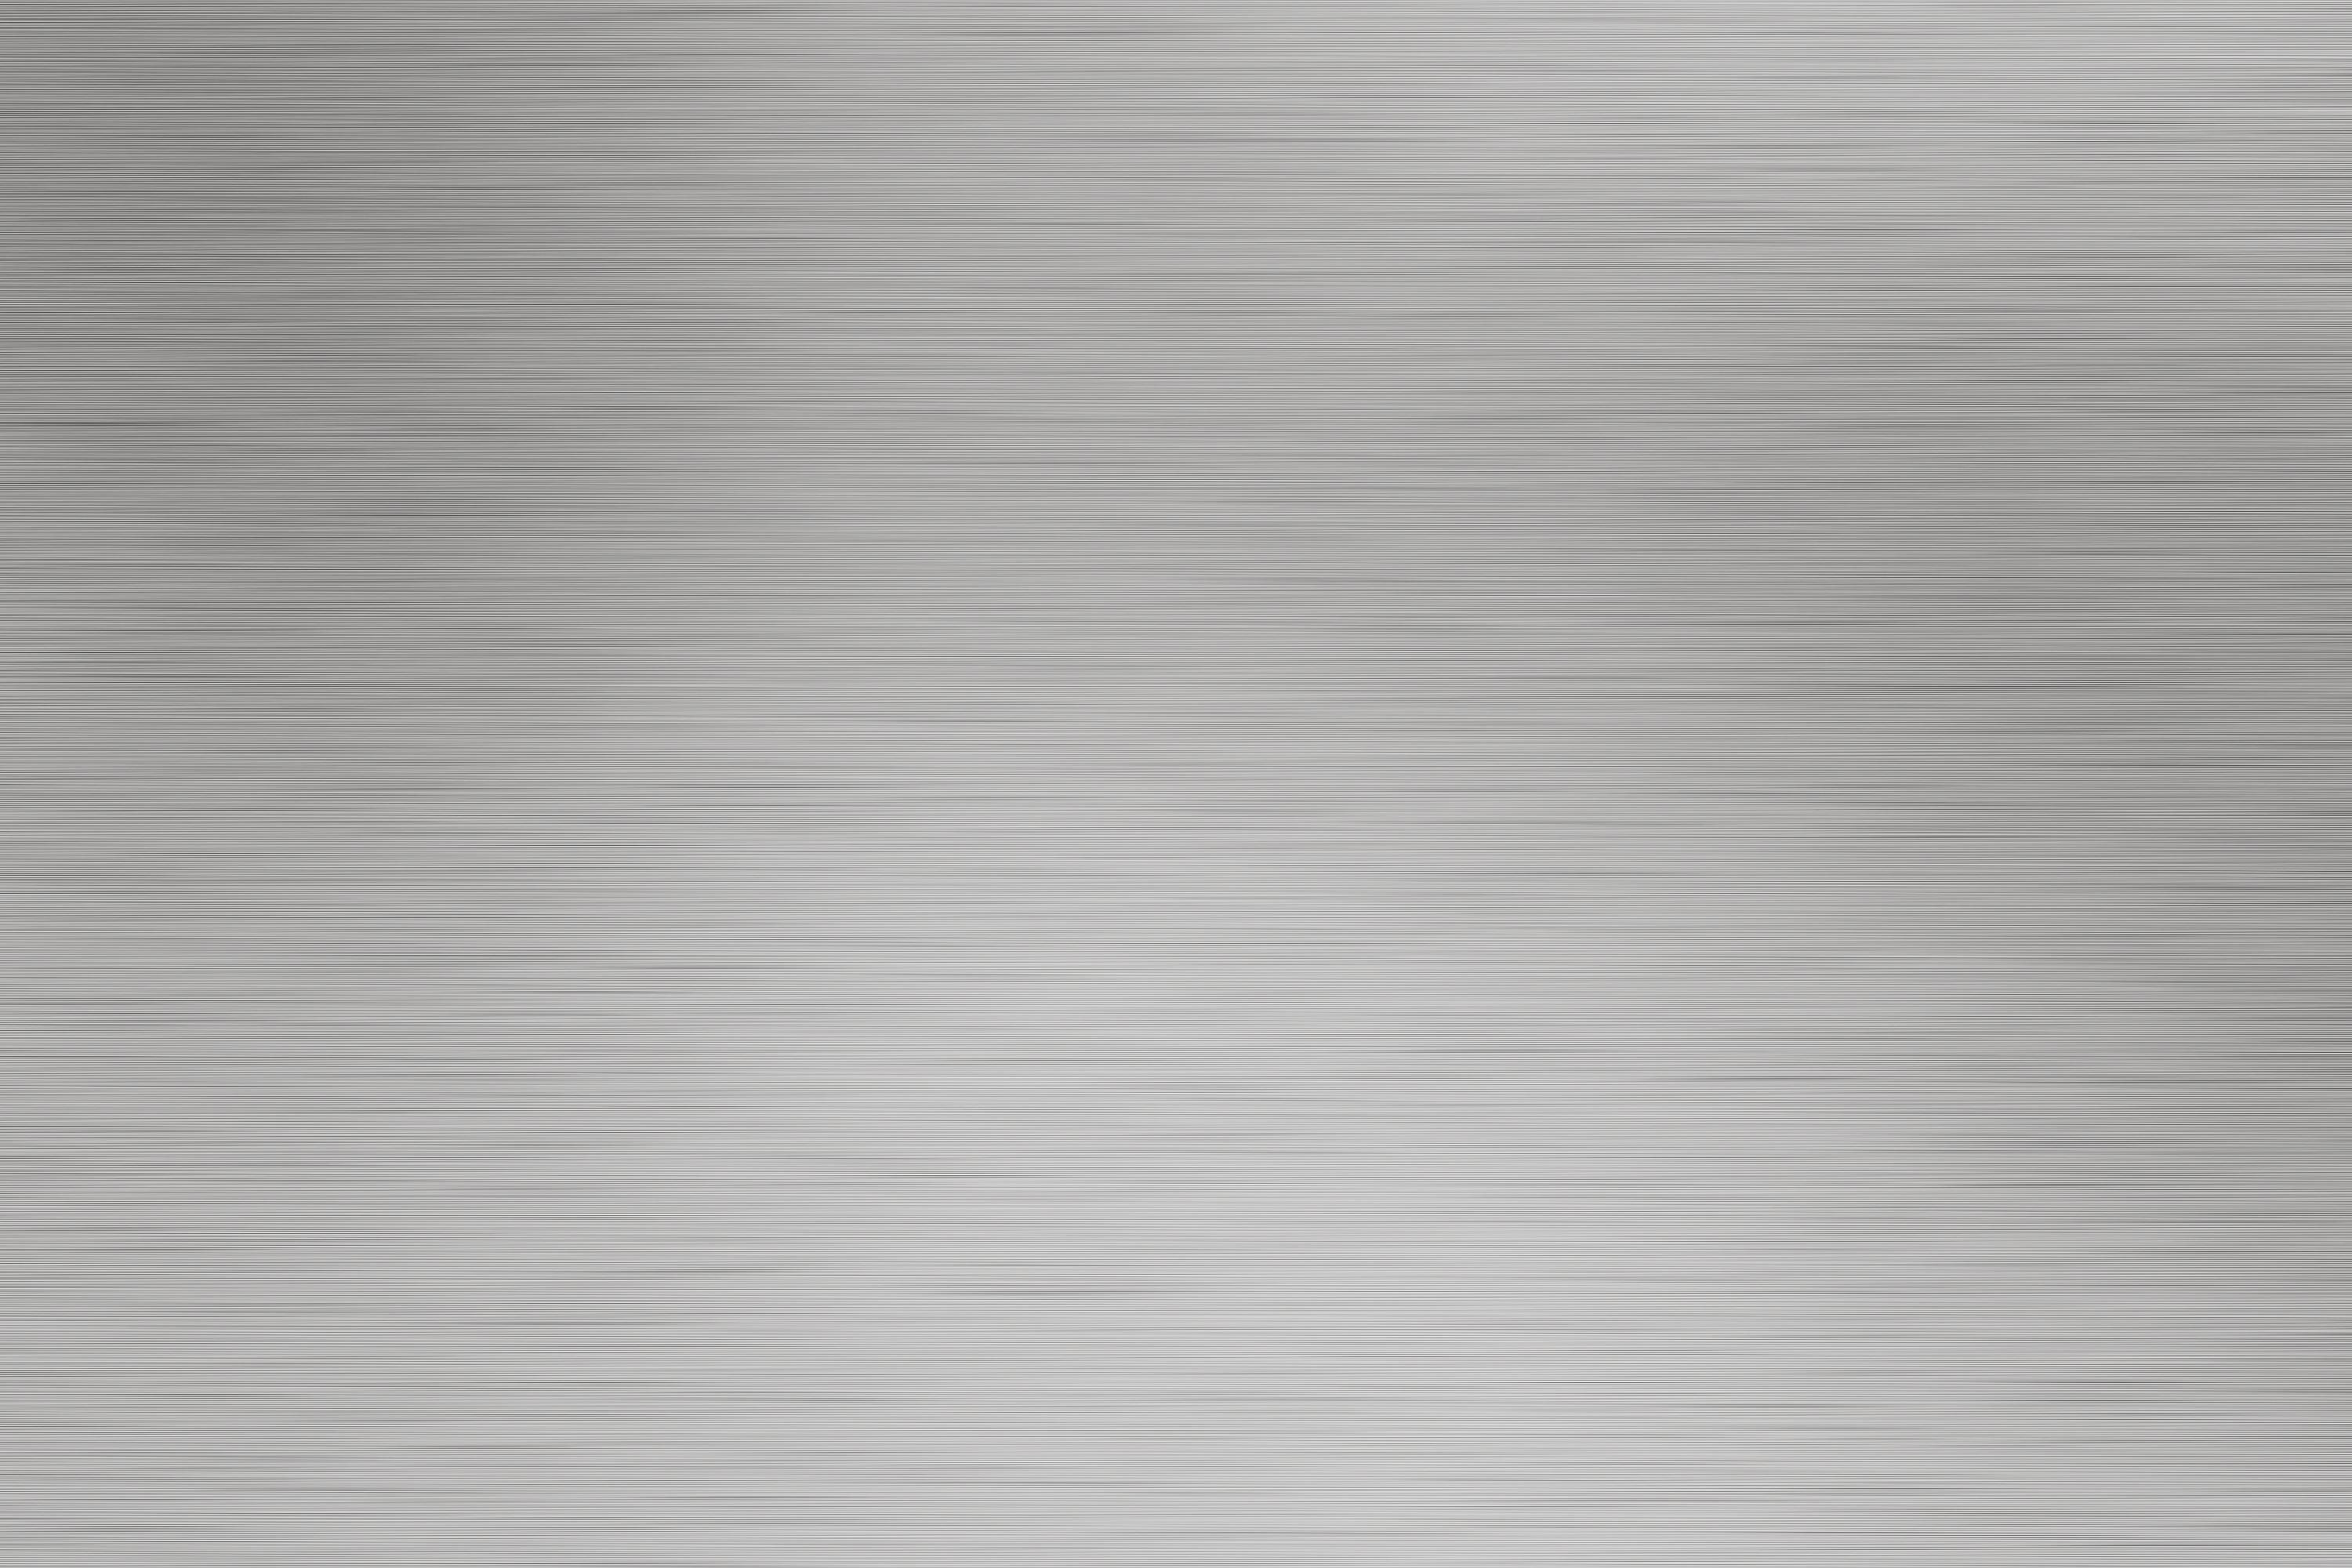 Minimalist Iphone X Wallpaper Hd Silver Wallpaper 183 ① Download Free Stunning Backgrounds For